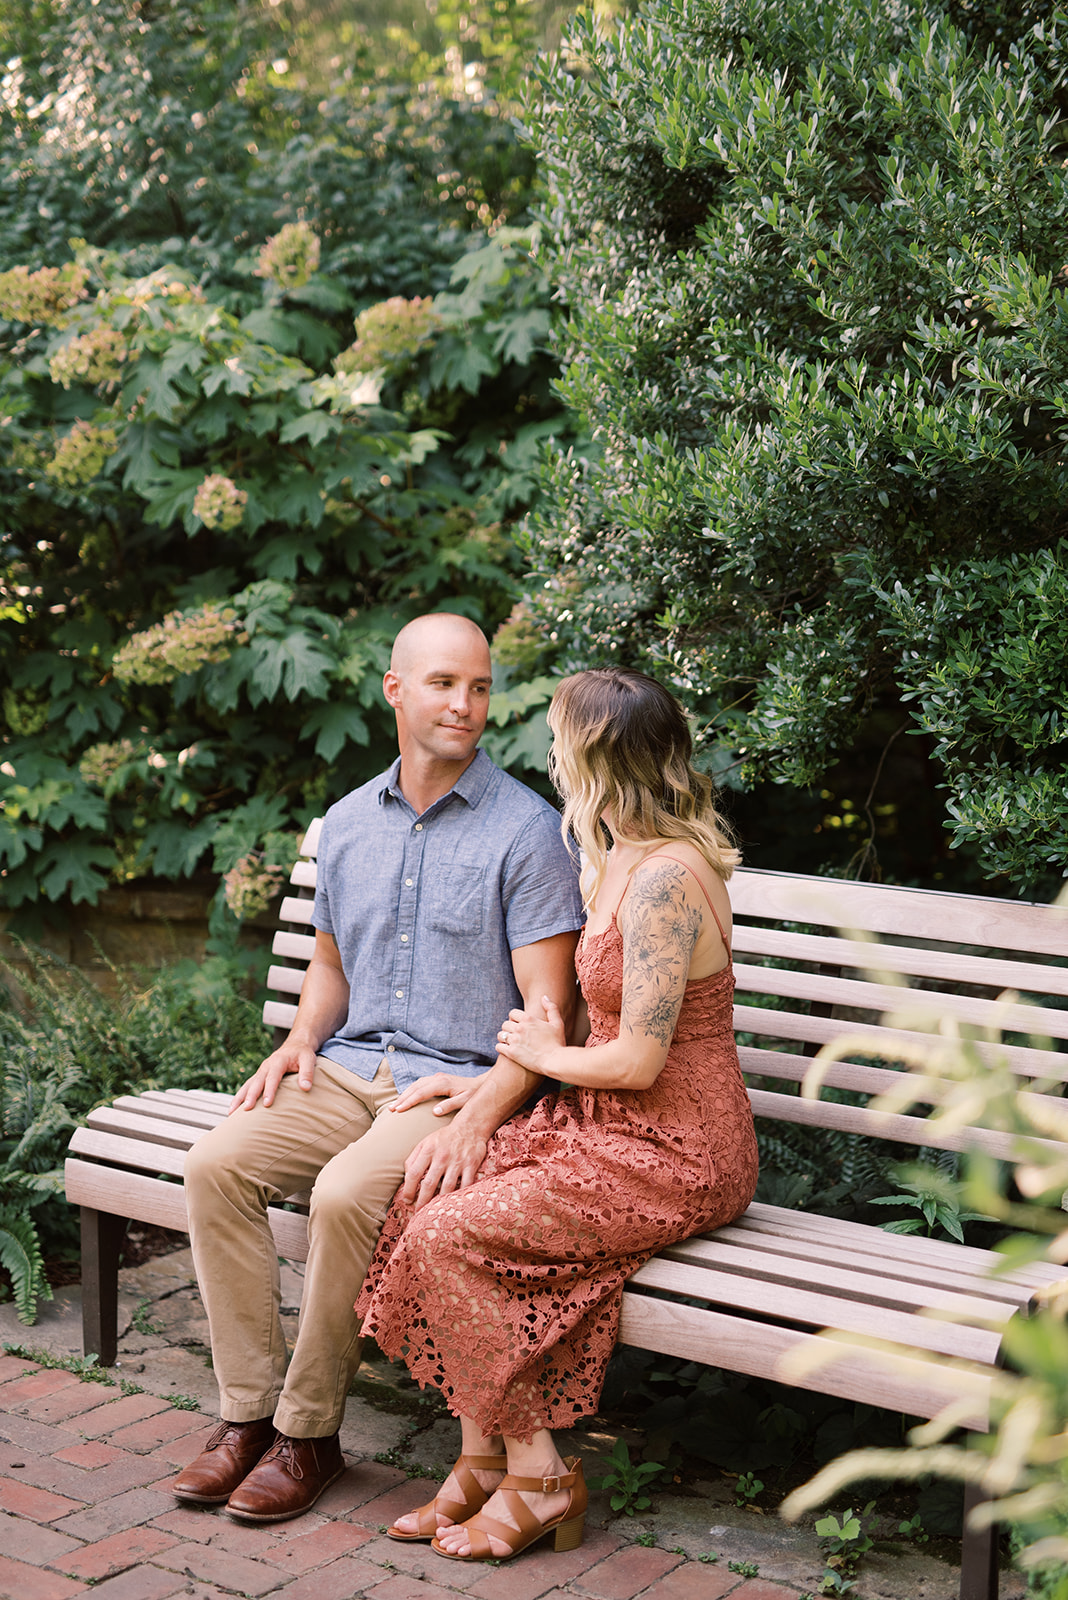 Engagement photography at Longwood Gardens.